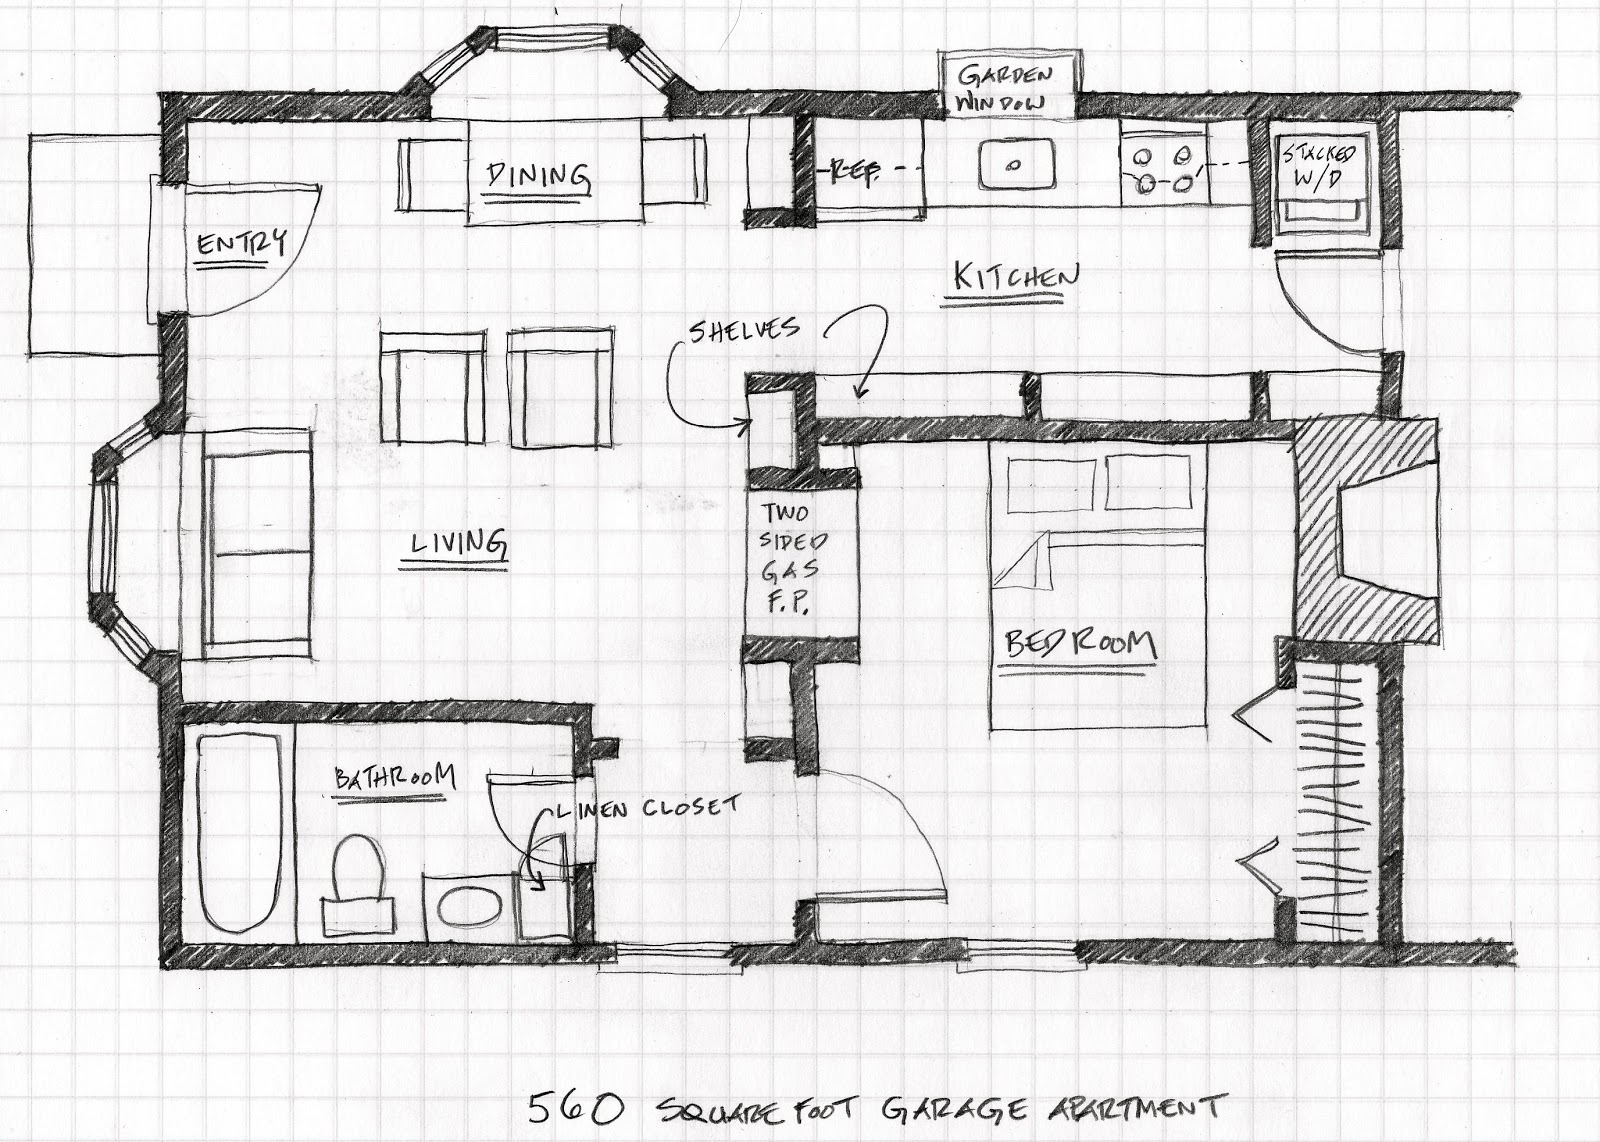 Great Floor Plan For 560 Square Foot Garage Apartment.